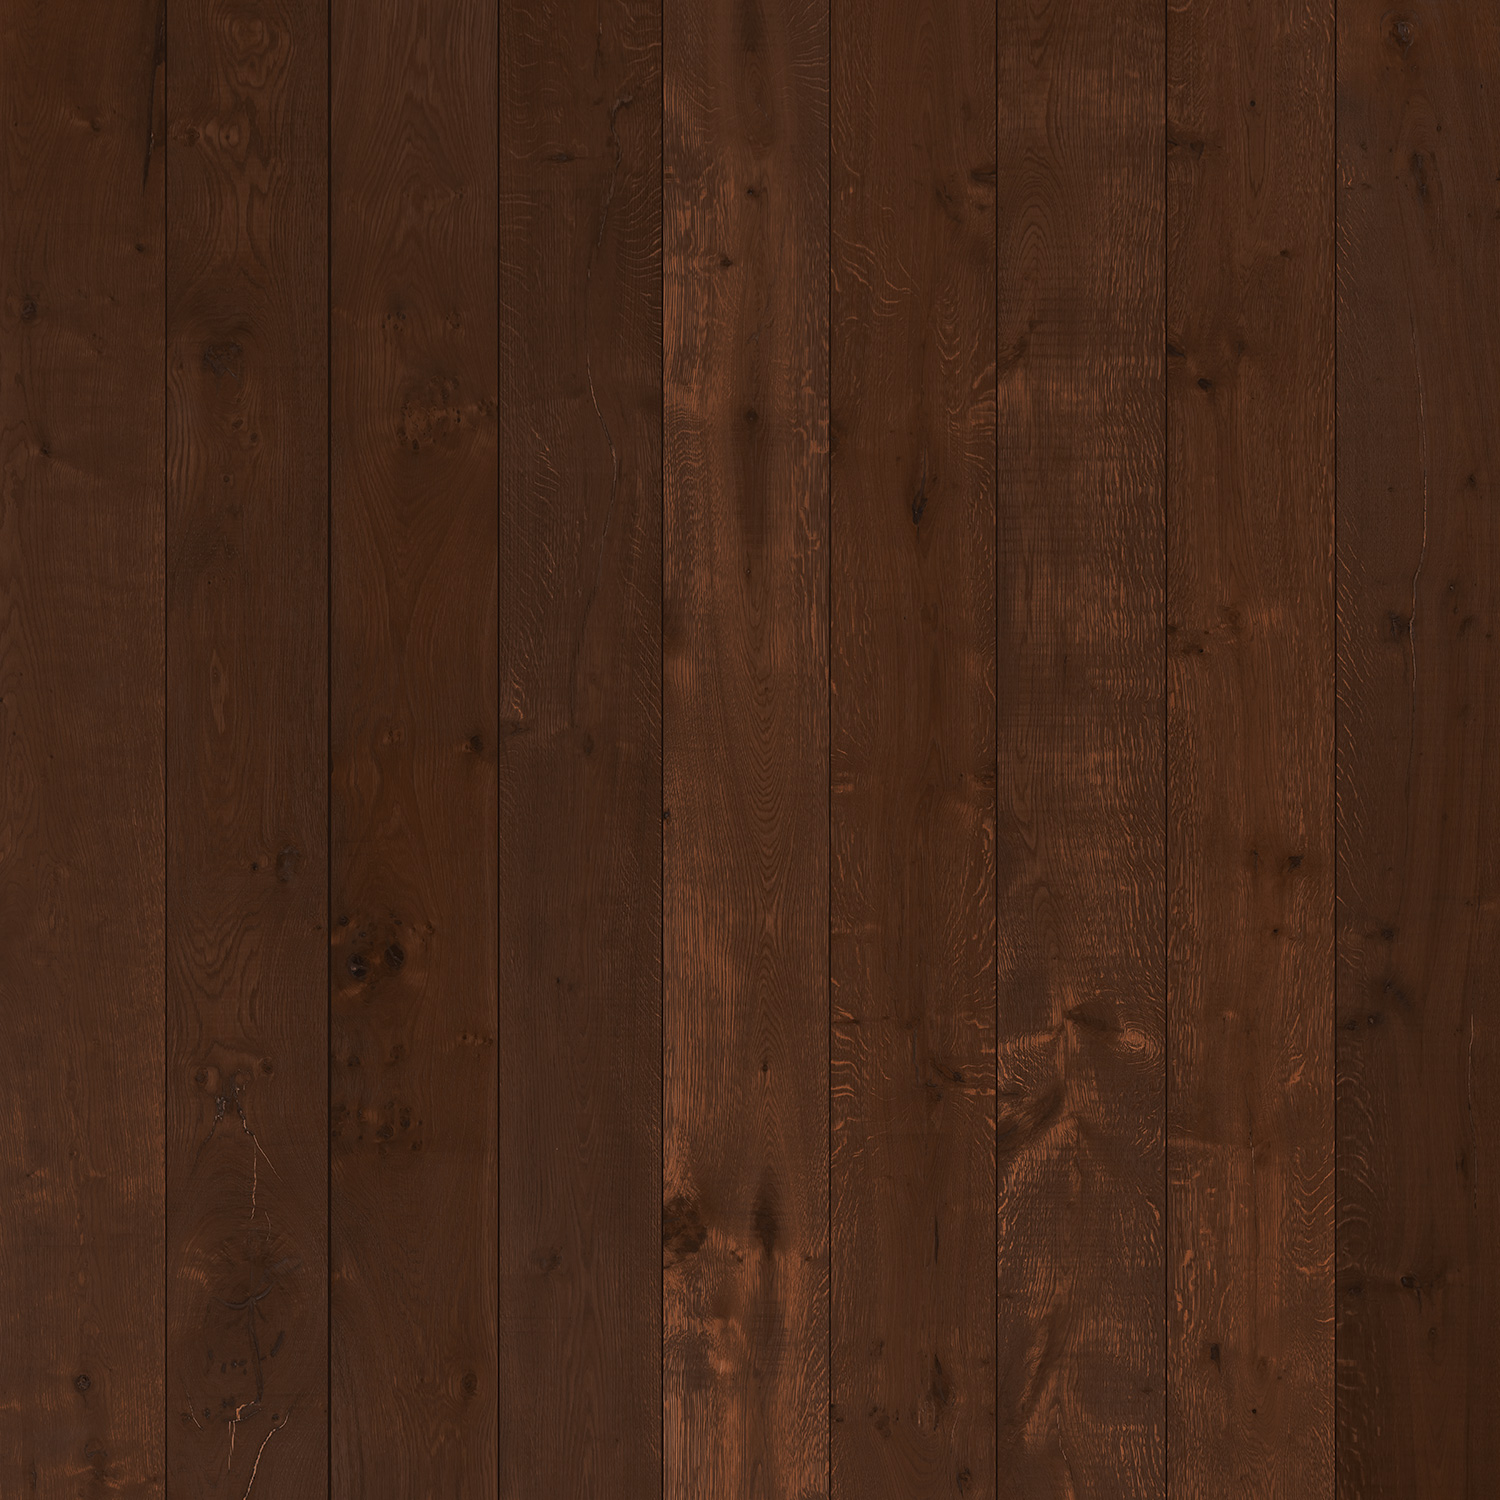 Wood Planks Matte Vinyl Backdrop (3.5' x 3.5') - Mocha